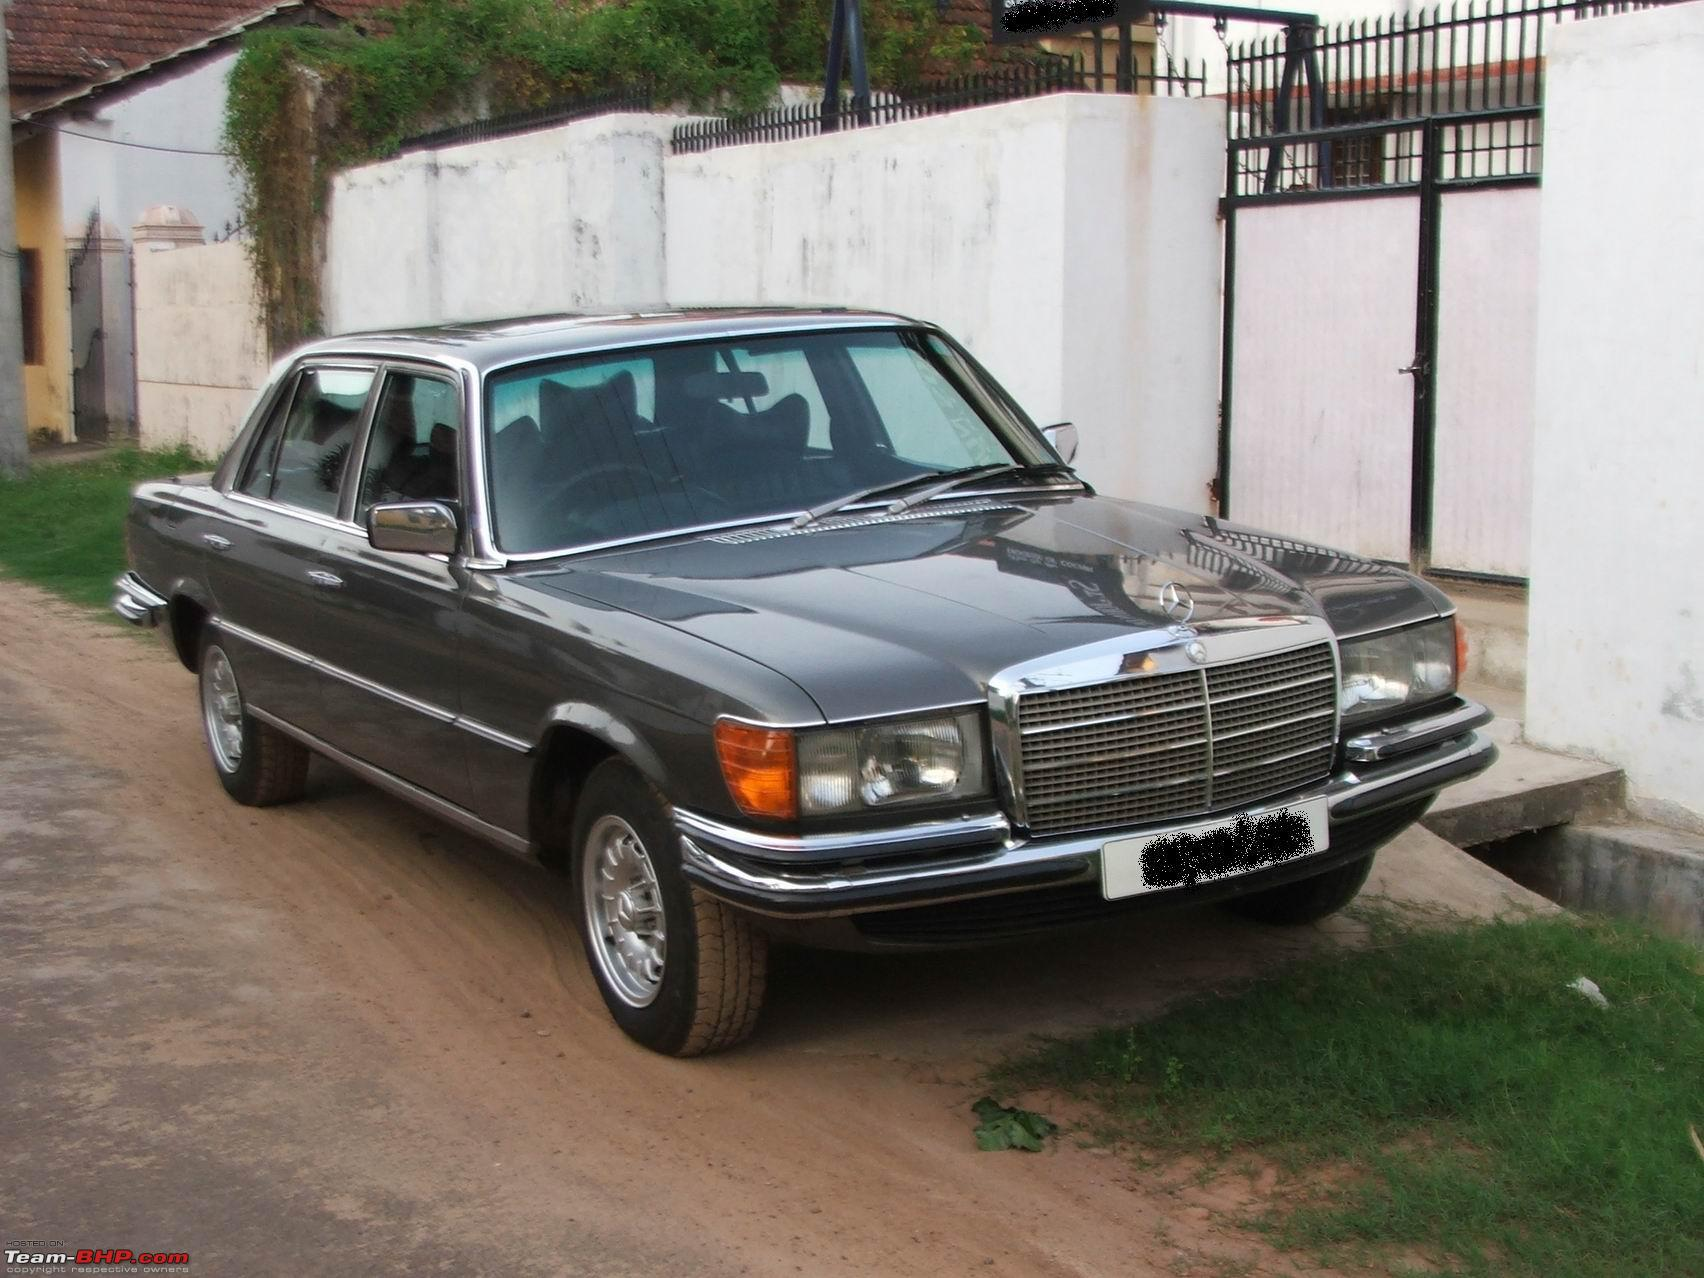 Vintage & Classic Mercedes Benz Cars in India - Page 9 - Team-BHP